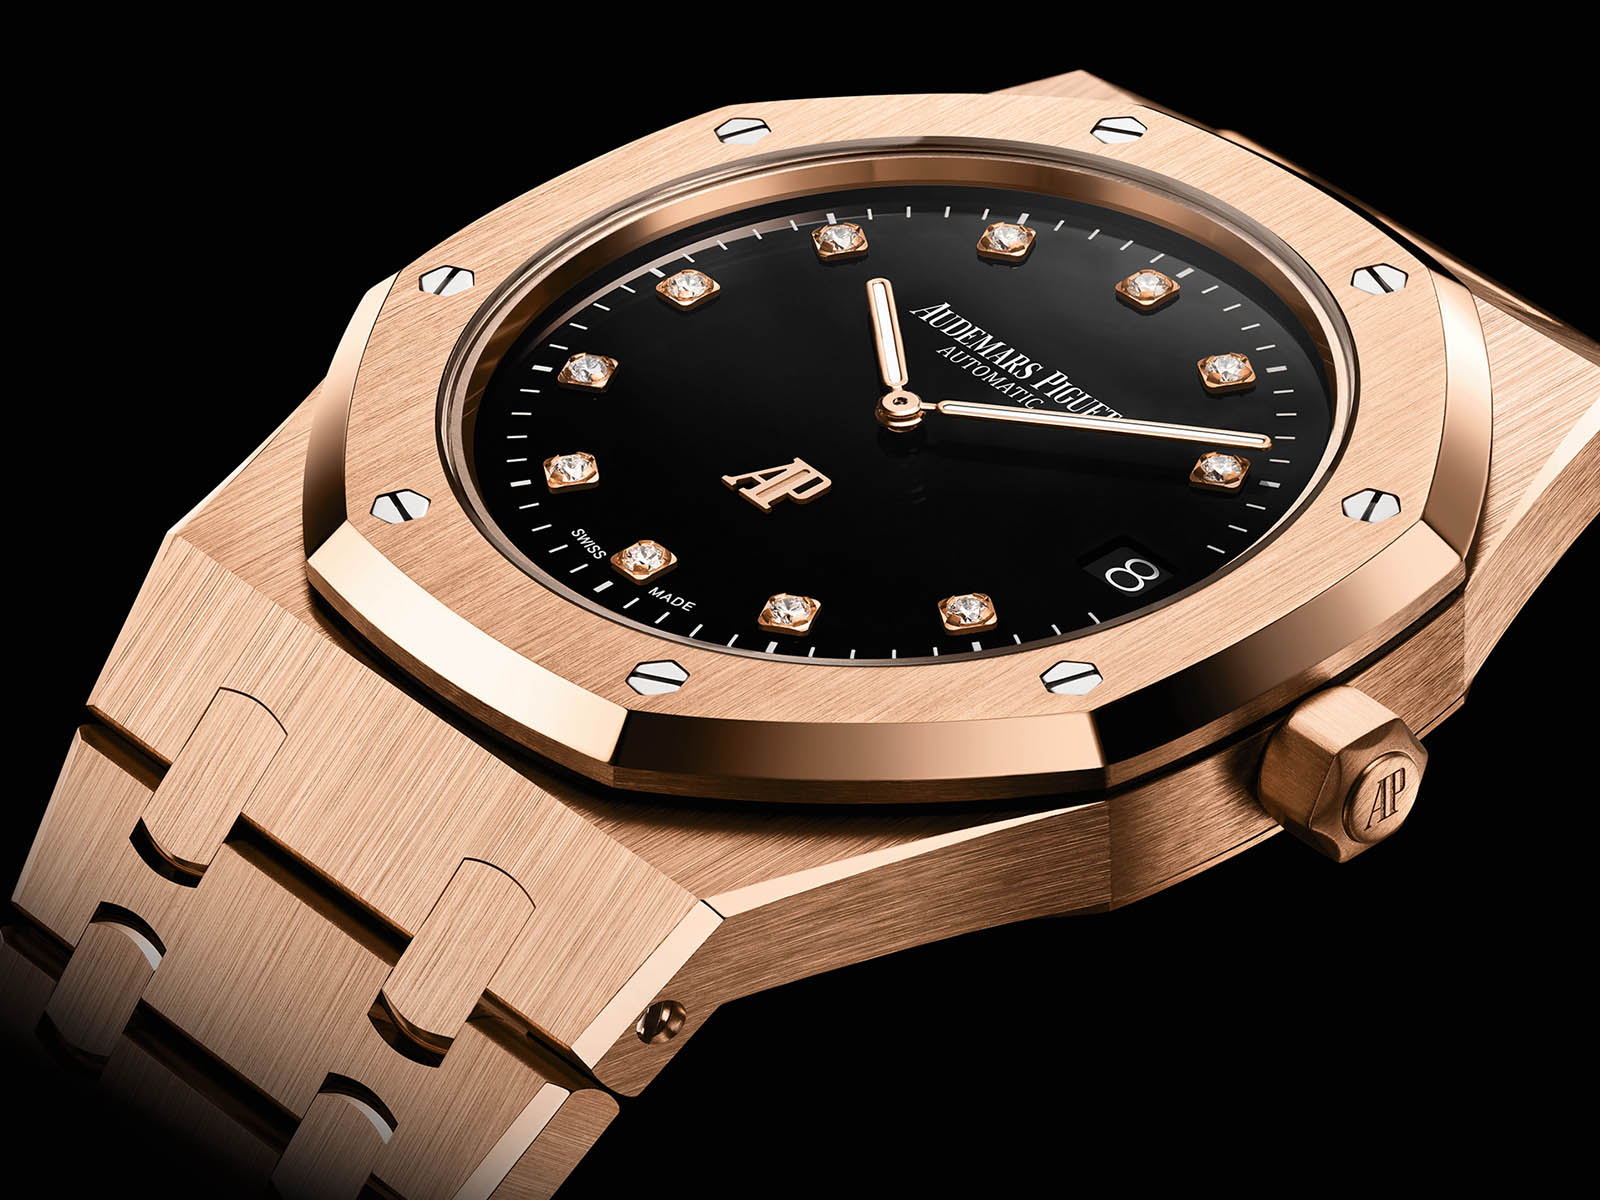 15207or-oo-1240or-01-audemars-piguet-royal-oak-jumbo-extra-thin-pink-gold-1.jpg